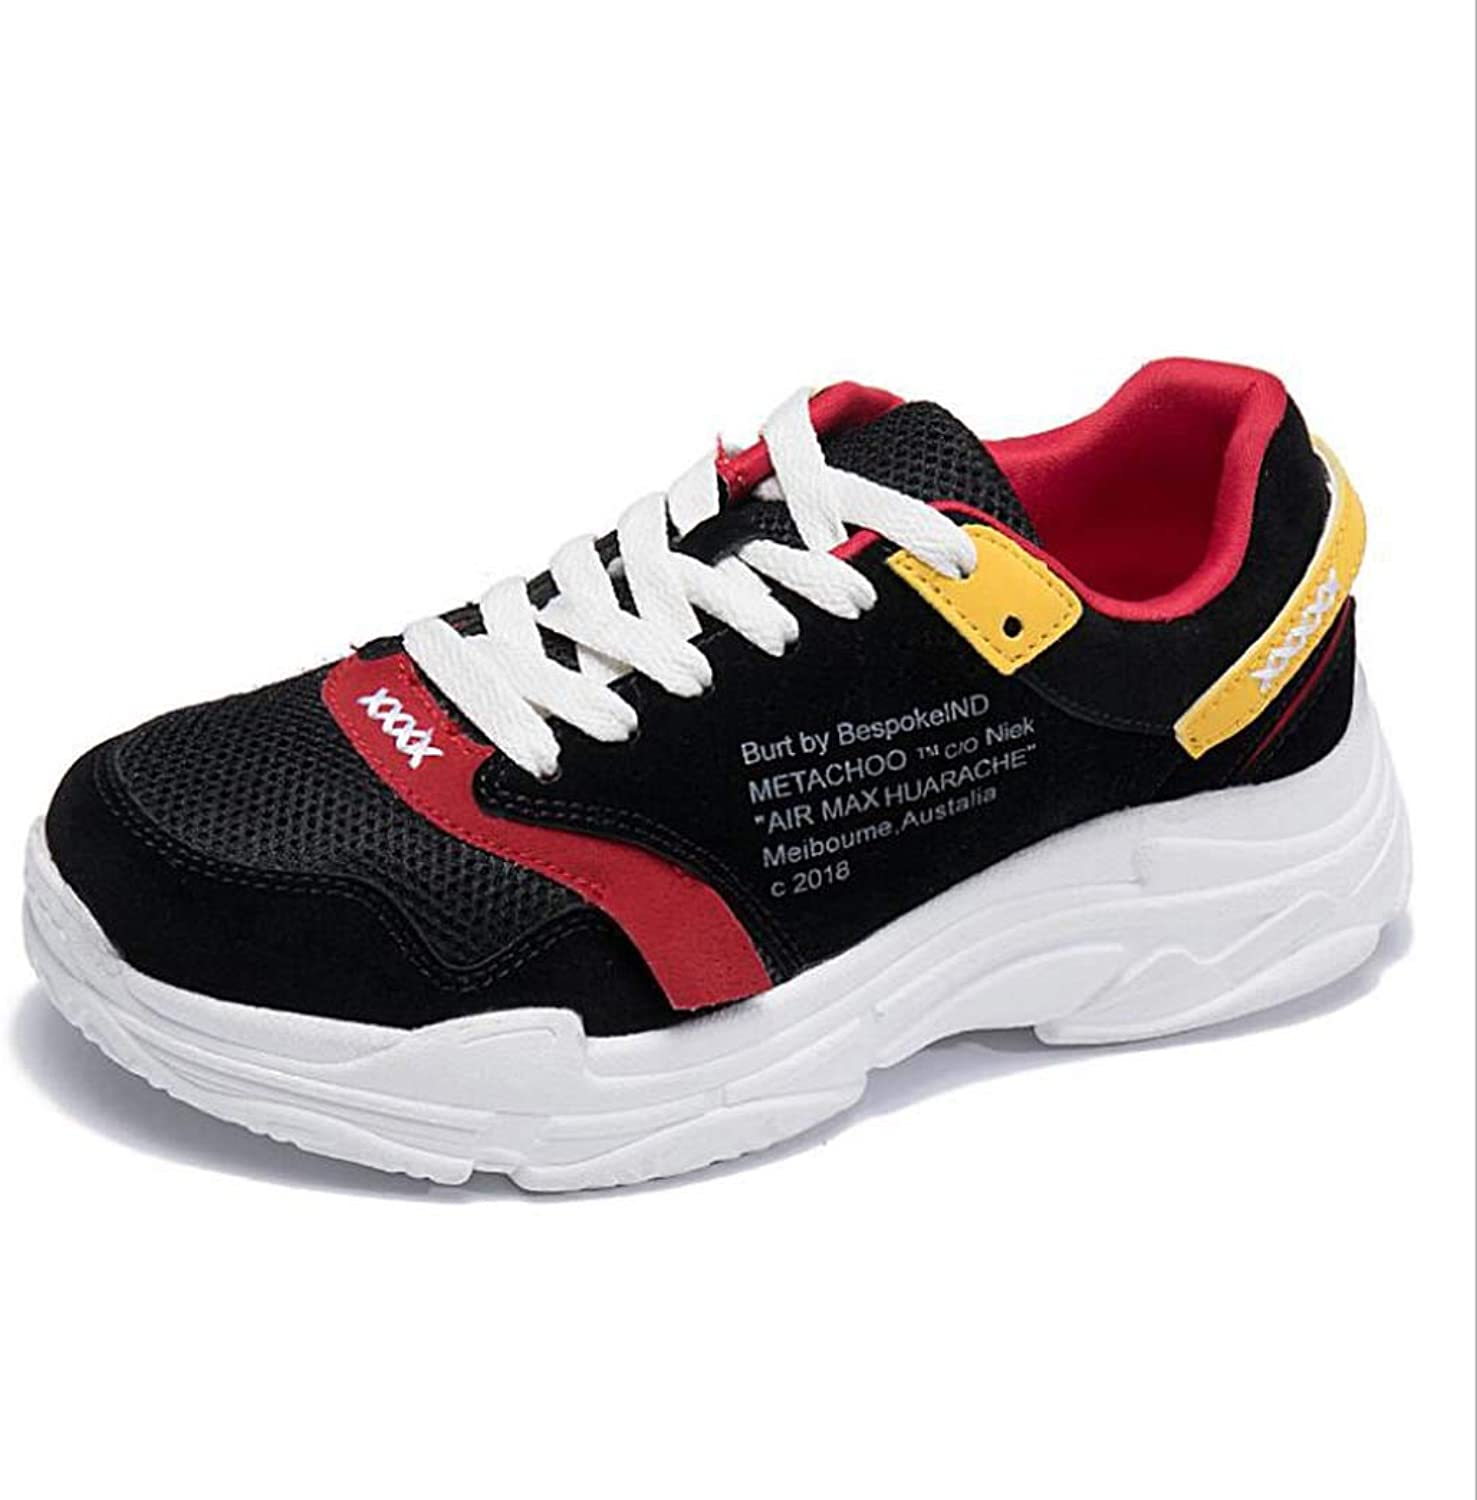 Women Outdoor Athletic Casual shoes-Mesh Soft Sole-Lightweight Breathable Fitness Walking shoes